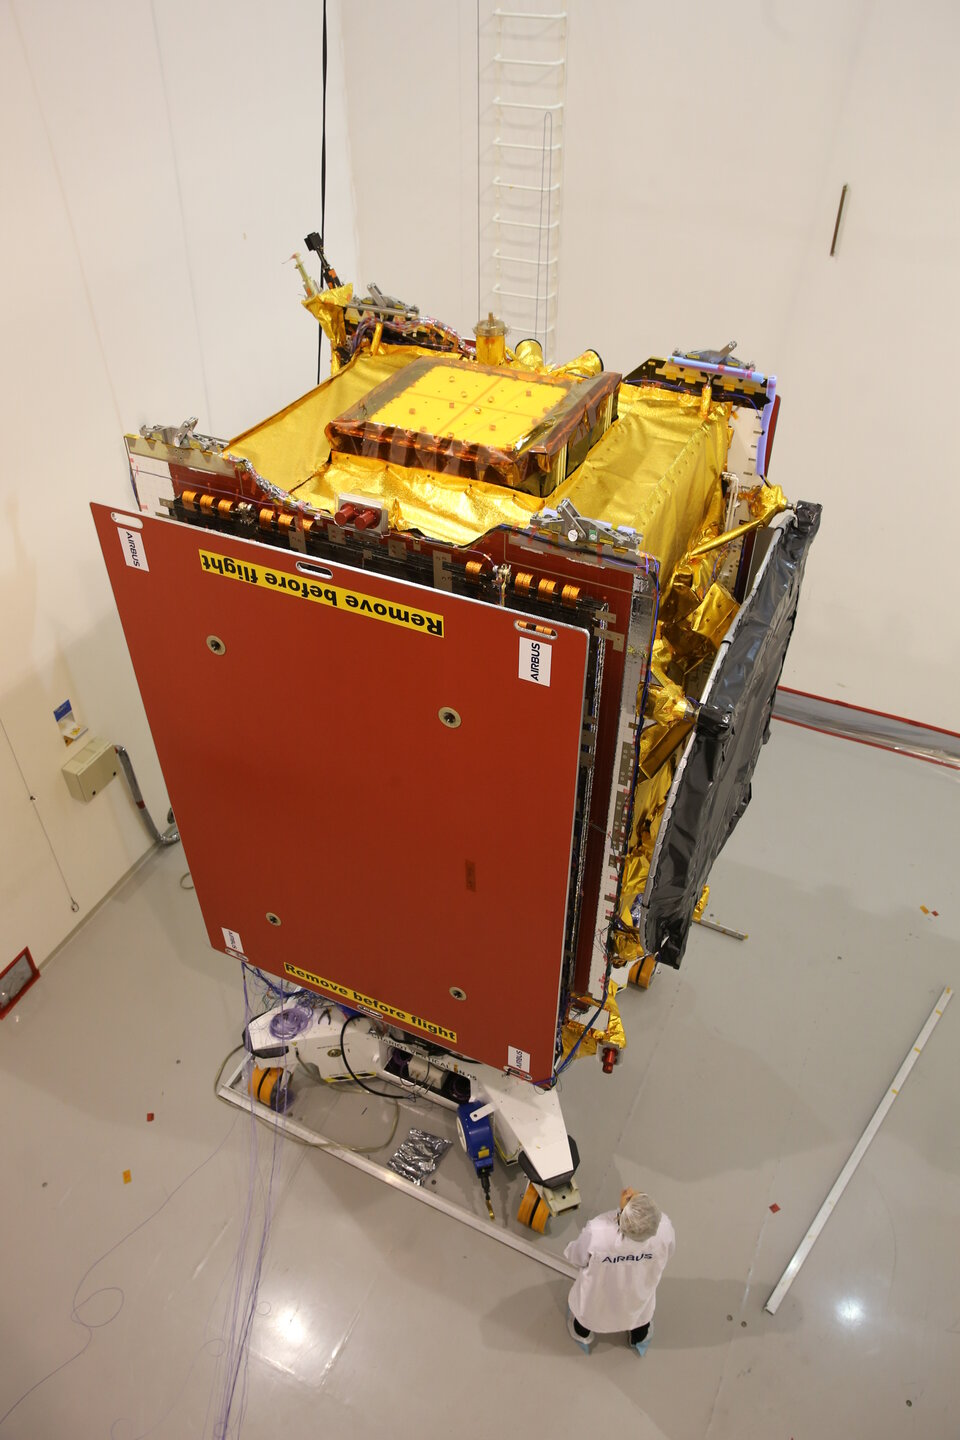 Quantum at the mechanical test facility in Toulouse